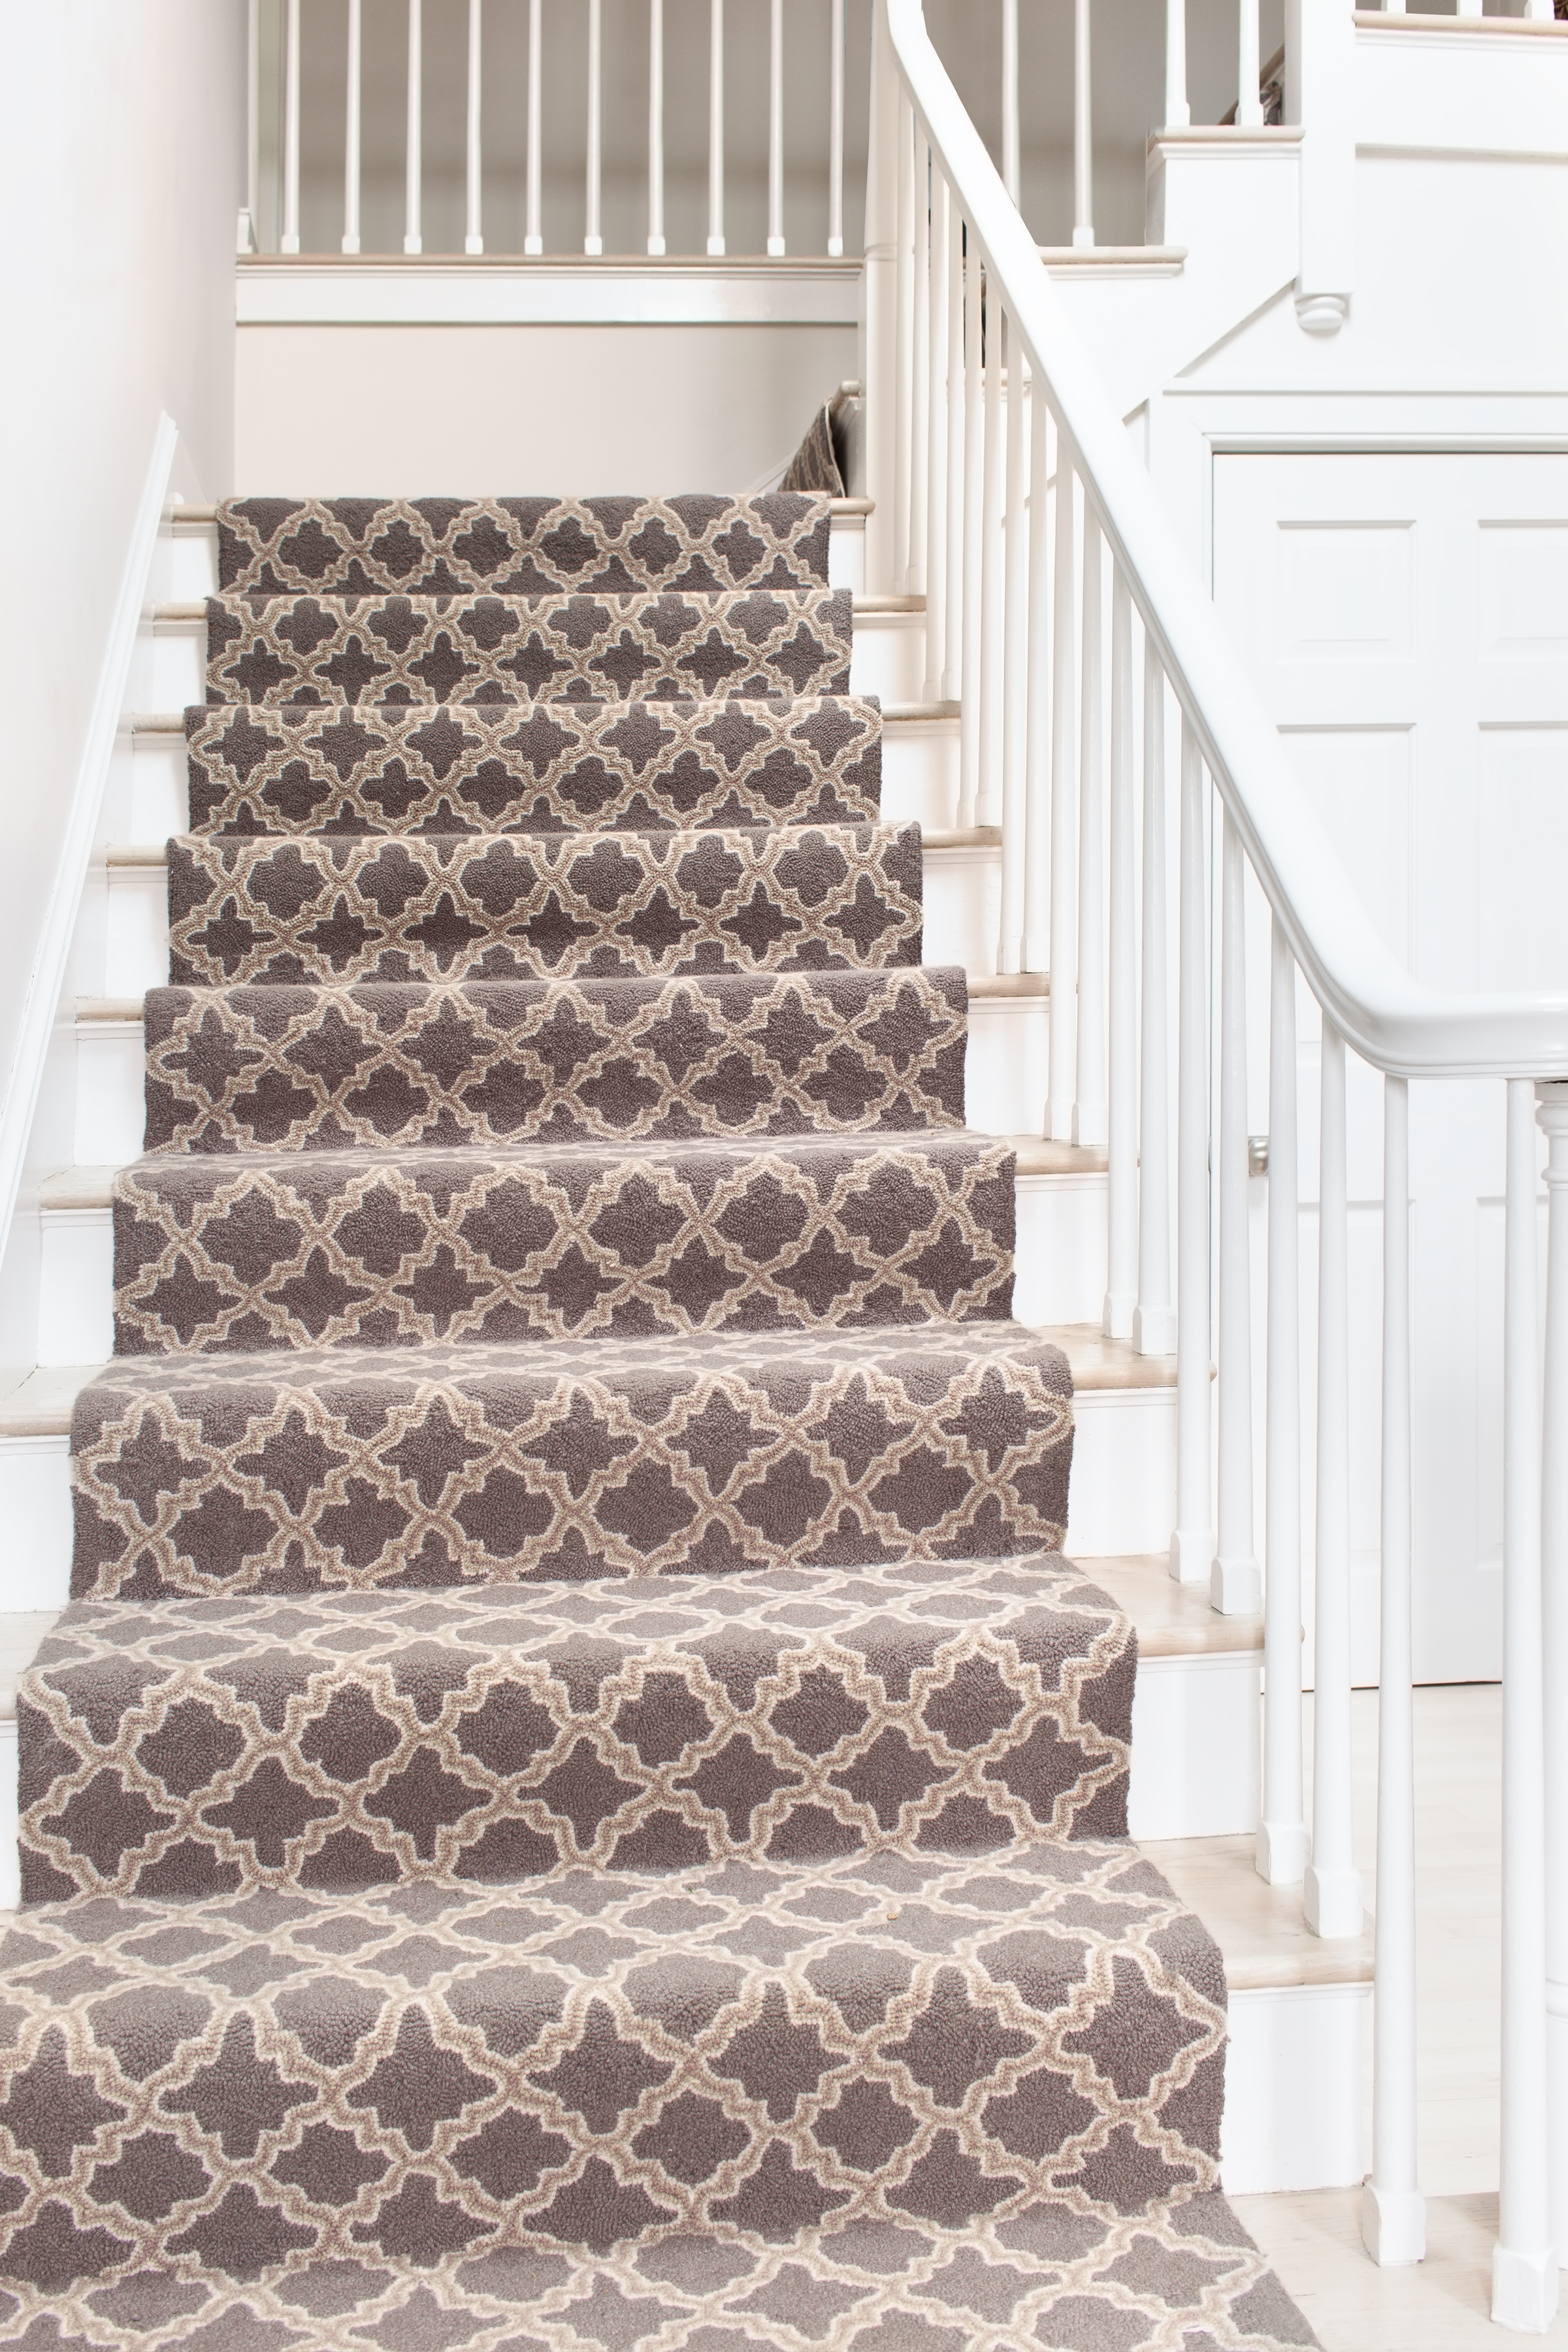 How To Choose A Runner Rug For A Stair Installation In Rugs For Staircases (Image 9 of 15)